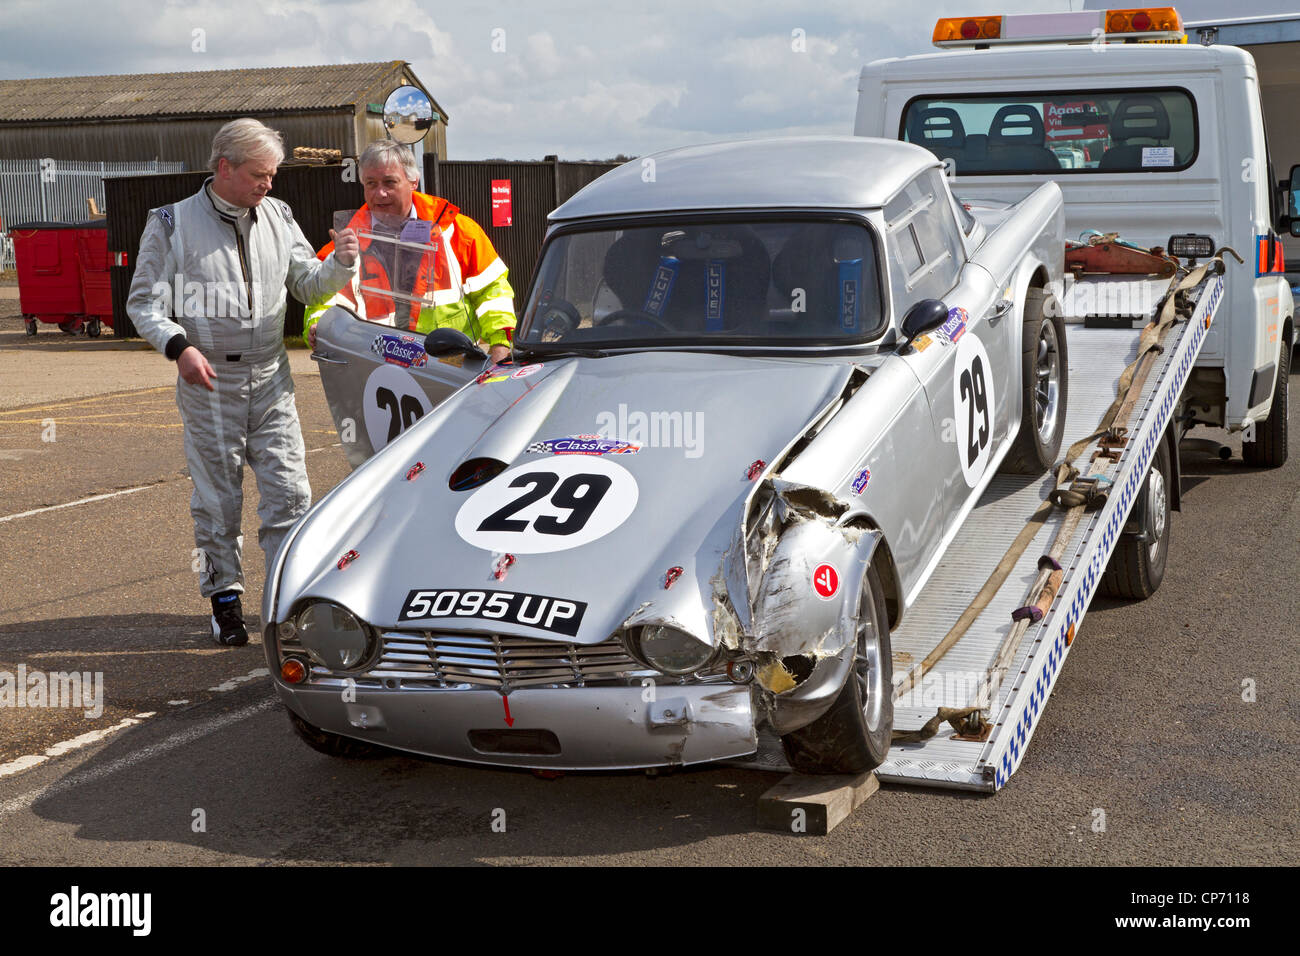 Heavily Damaged 1963 Triumph Tr4 Competitor In The Cscc Swinging